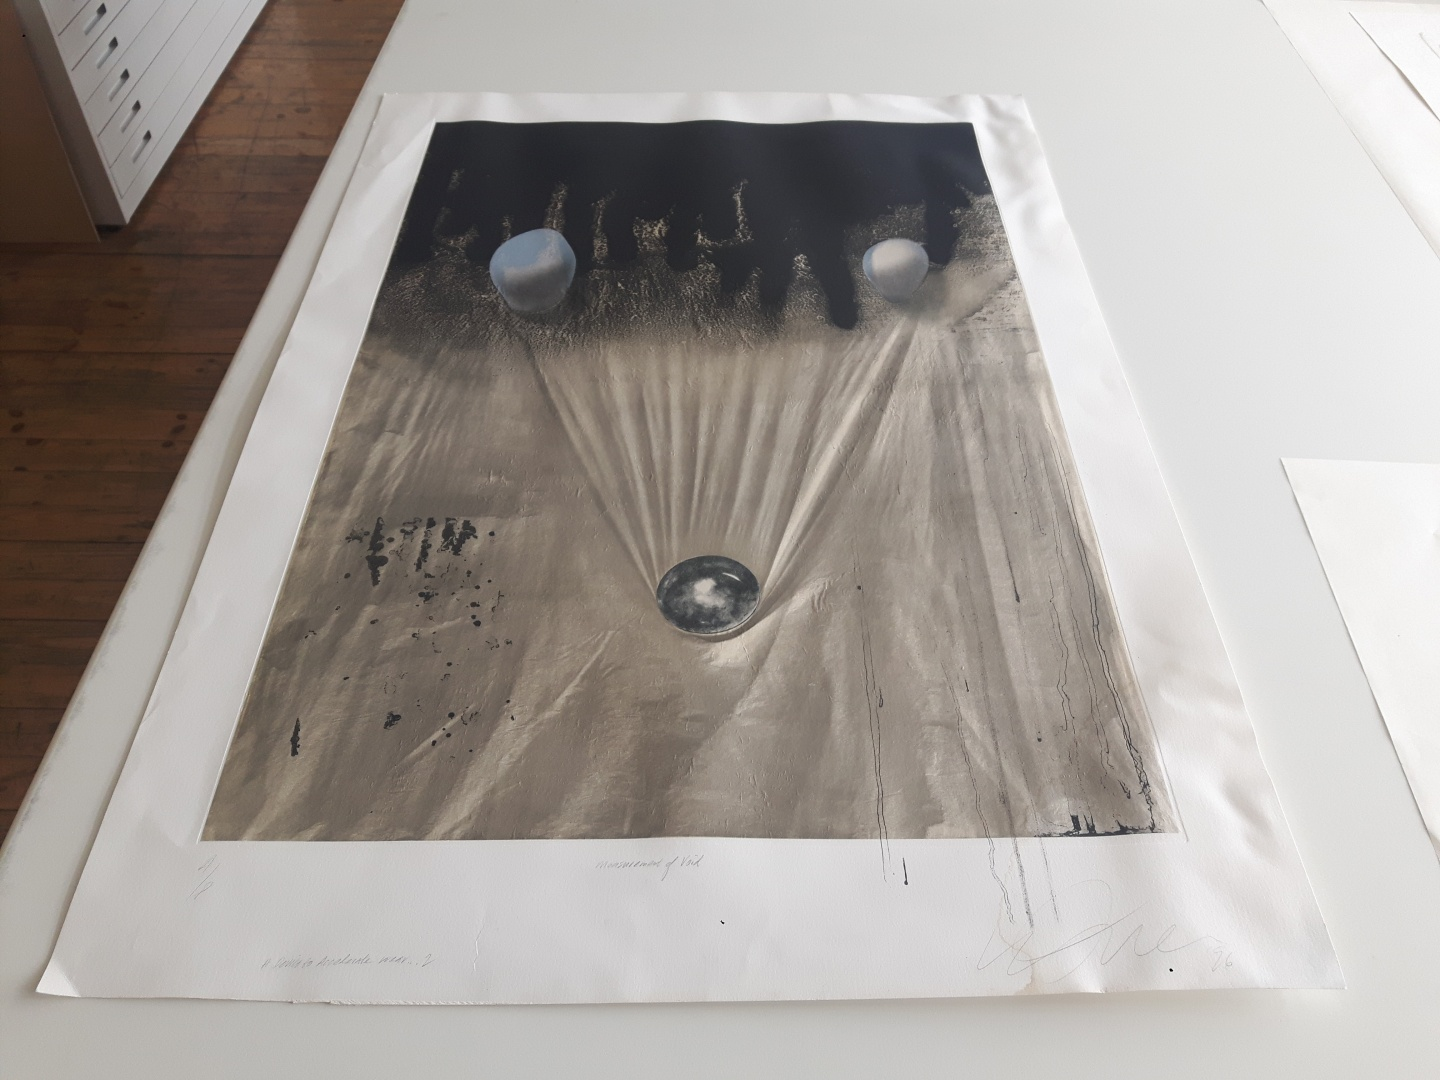 fig 14. Conservation of Walter Jule's print in mixed technique Measurement of Void – A Device to Accelerate Wear that had been damaged in a water-accident started in 2018. The work before conservation.